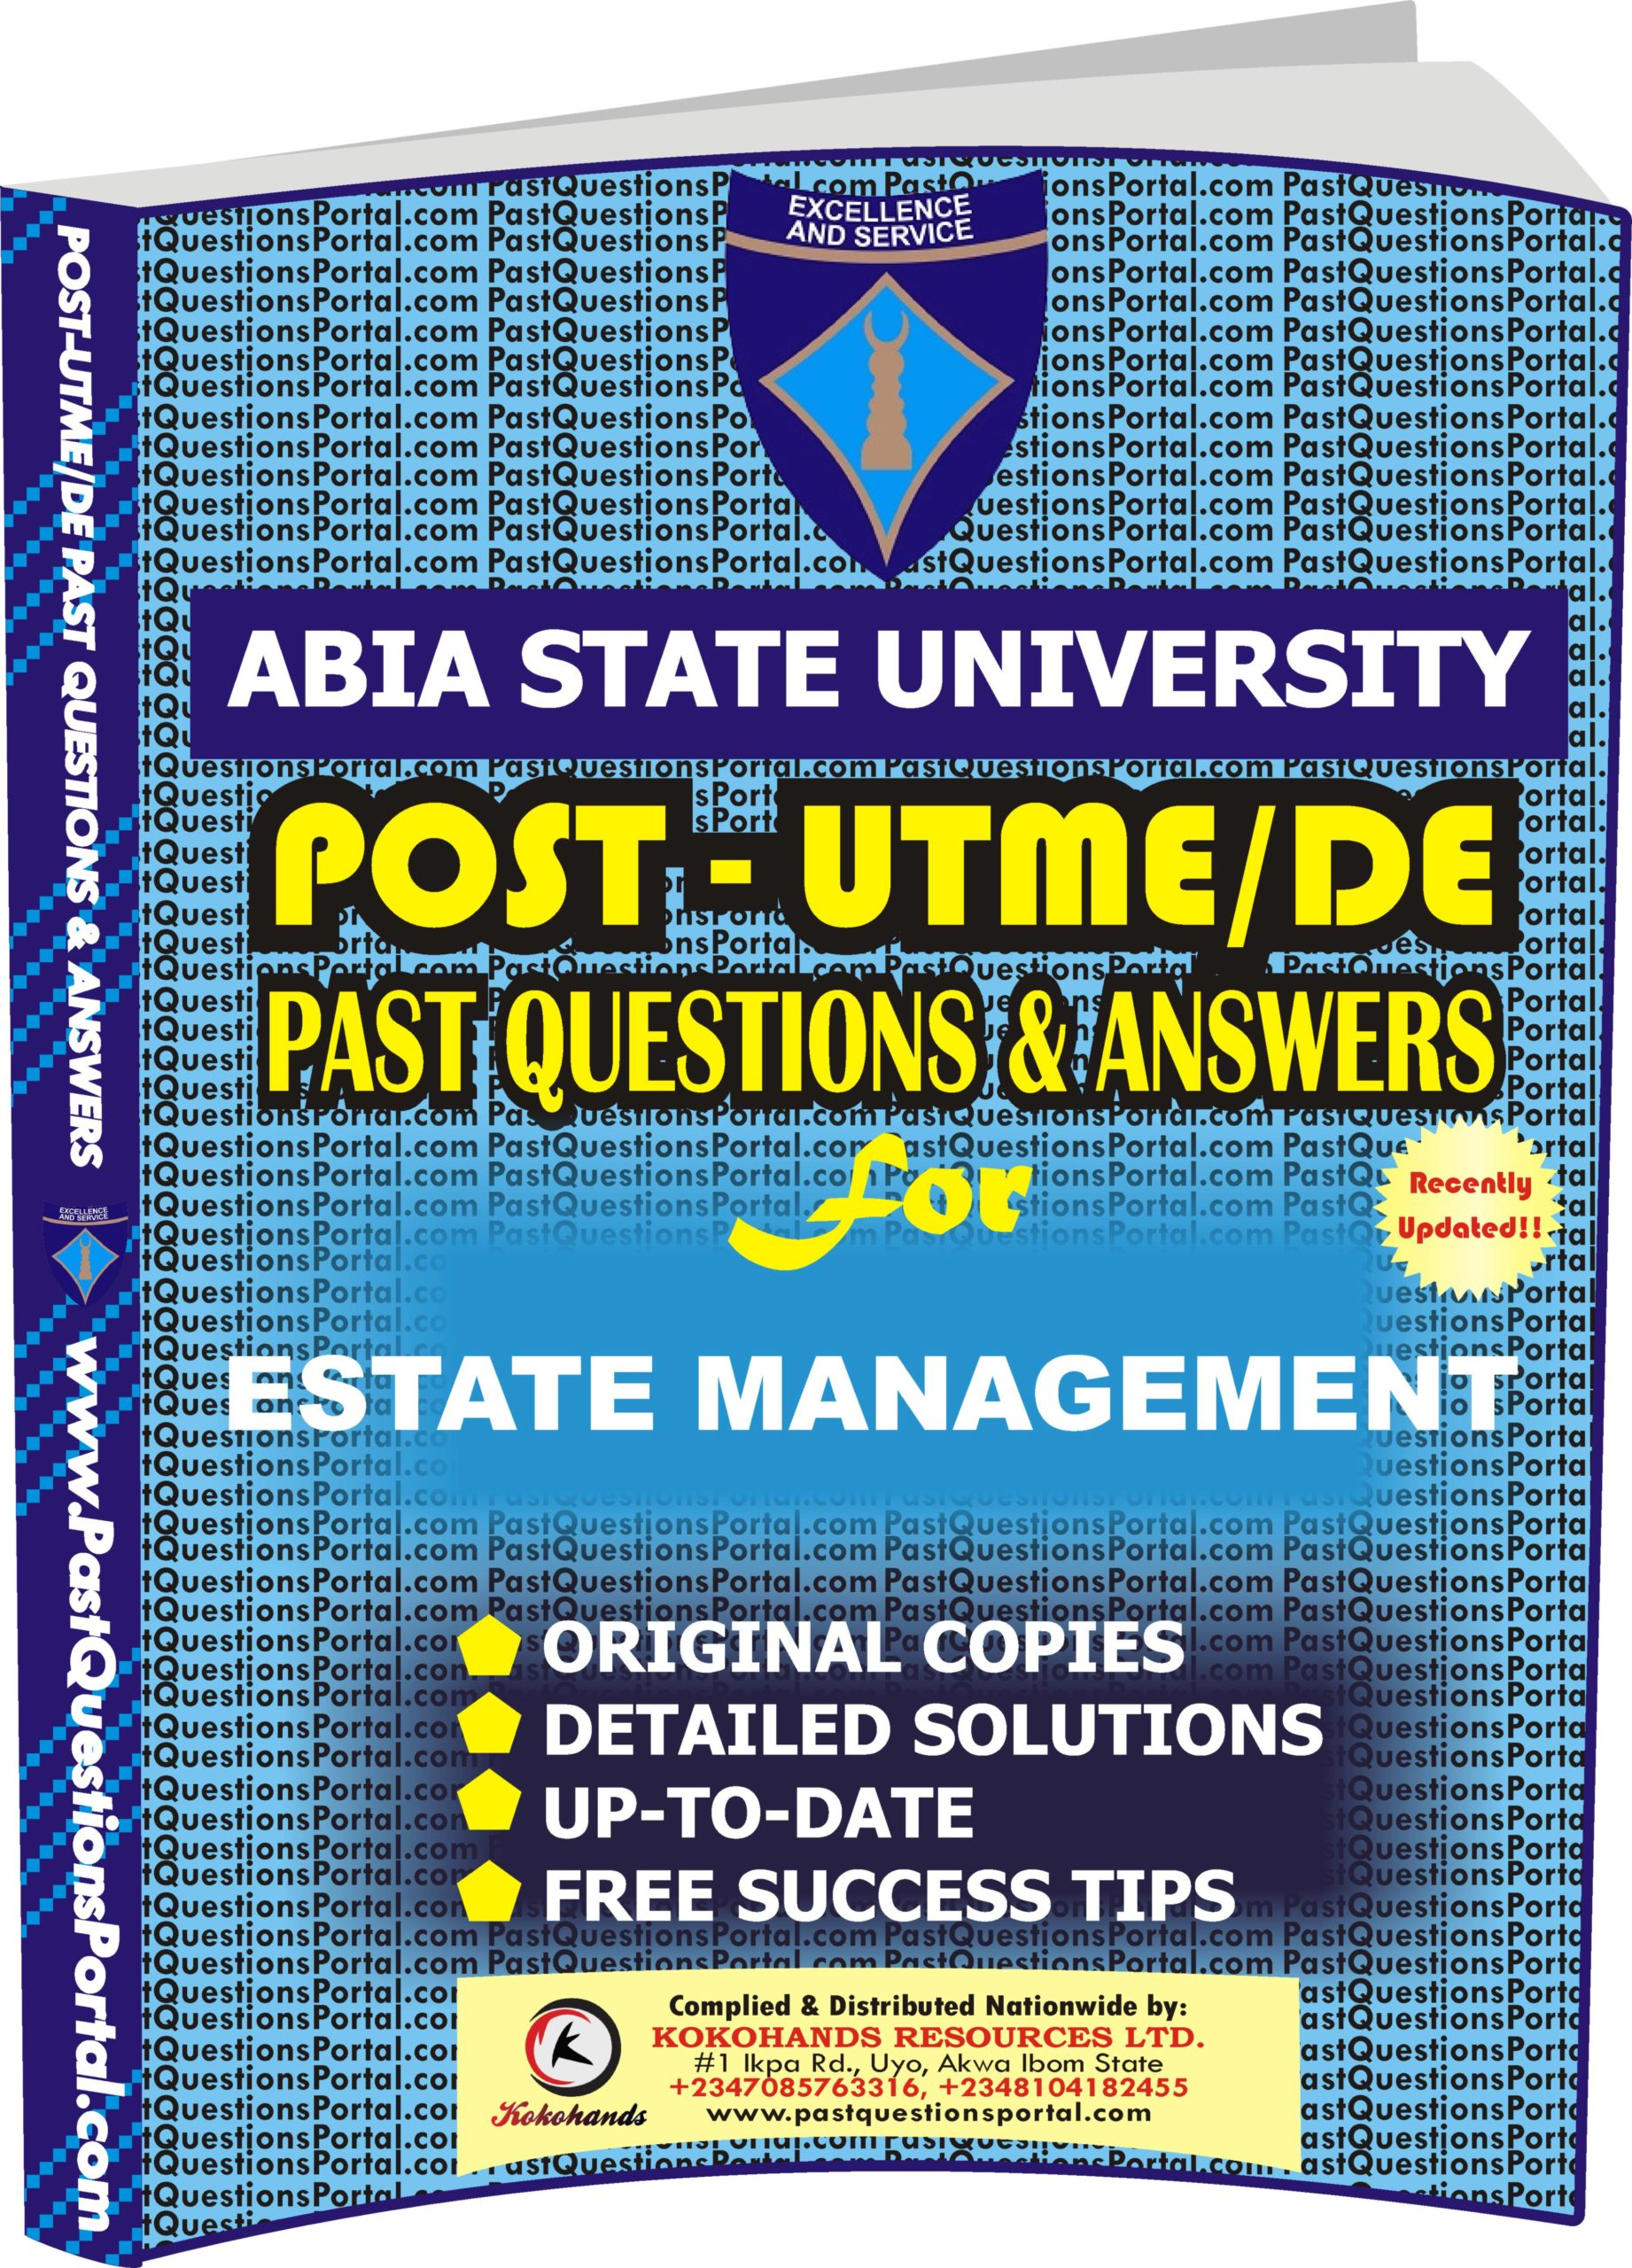 ABSU Post UTME Past Questions for ESTATE MANAGEMENT